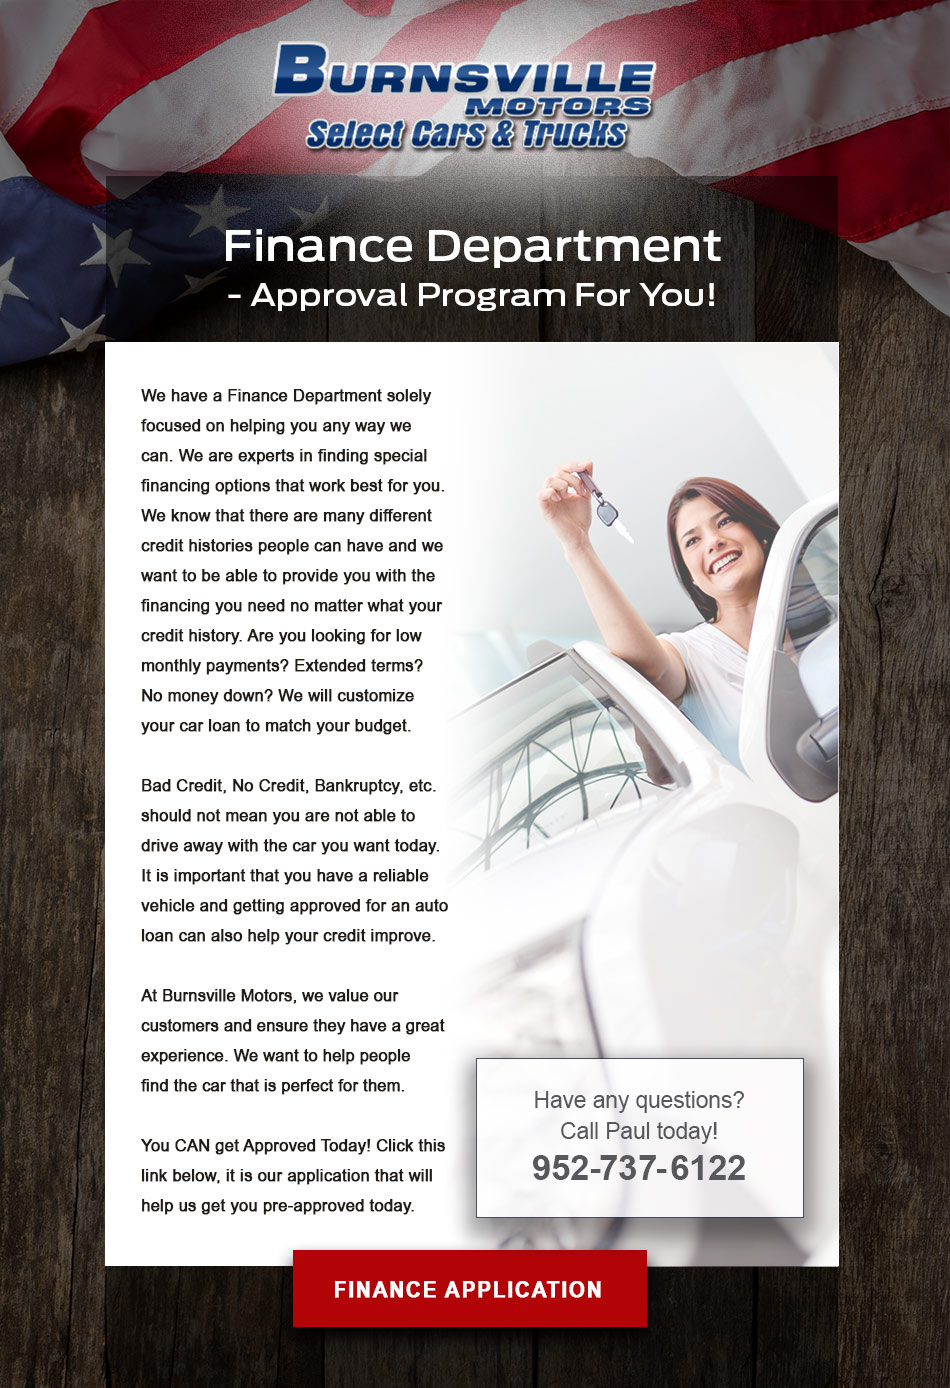 Finance Department - Approval program for you